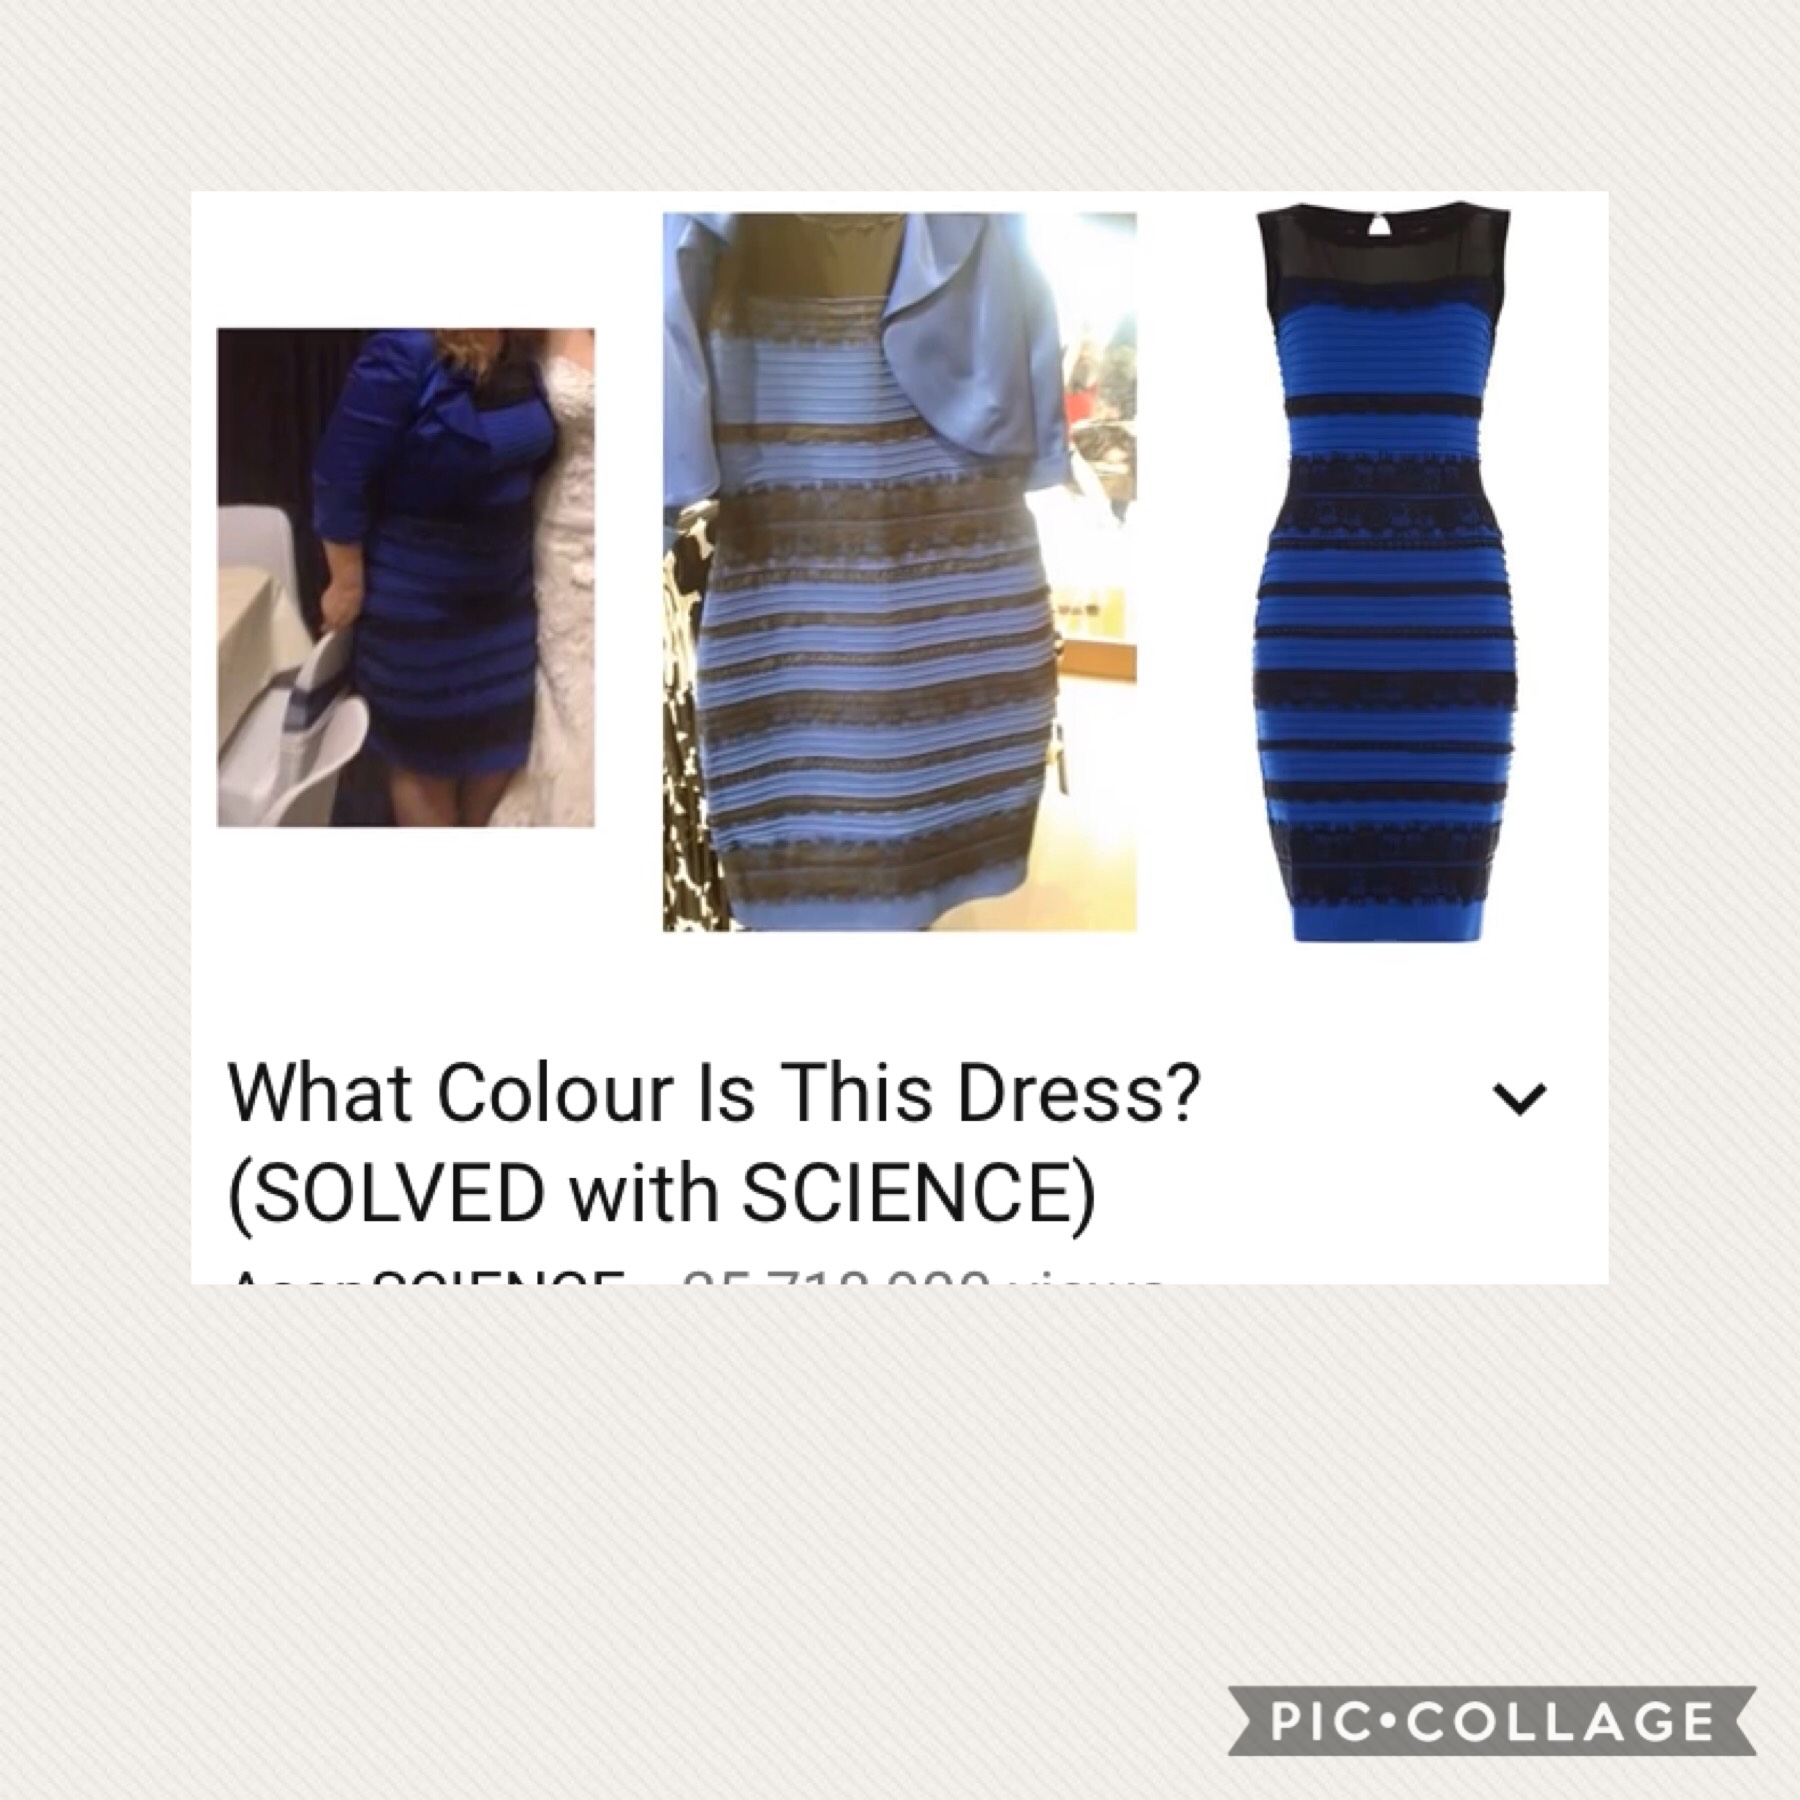 IT IS BLUE AND BLACK!!!